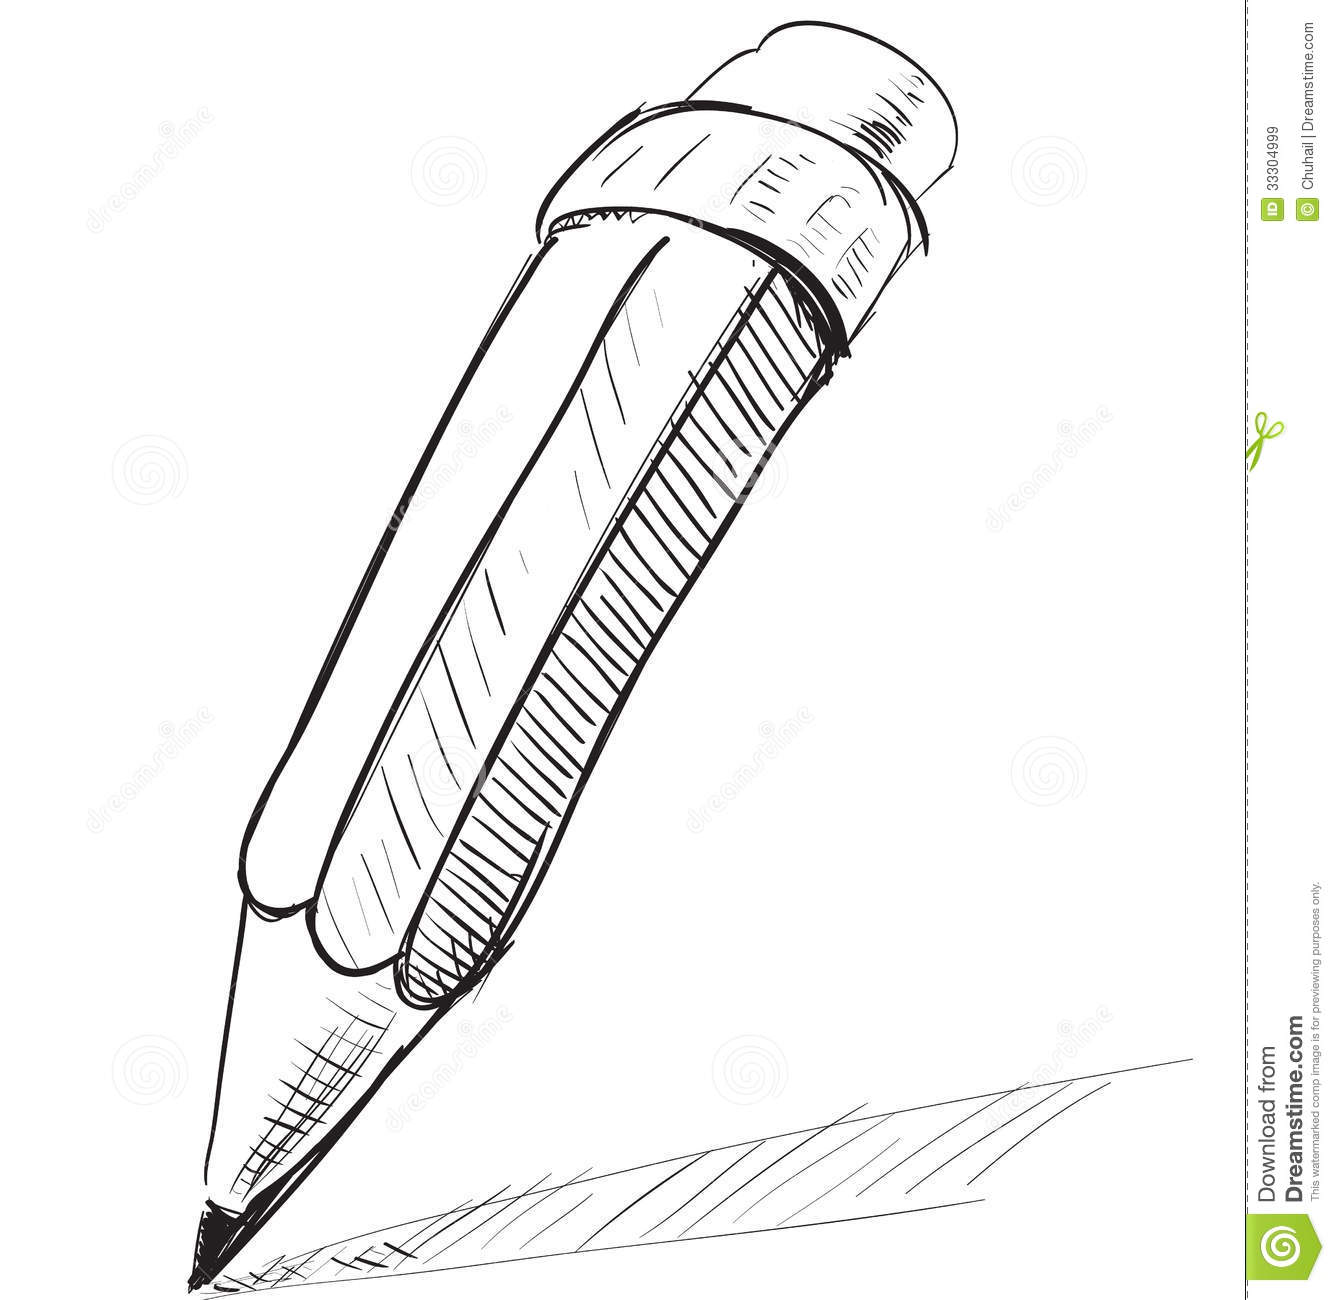 Pencil Drawing Images Cartoons: Pencil Sketch Cartoon Vector Illustration Royalty Free